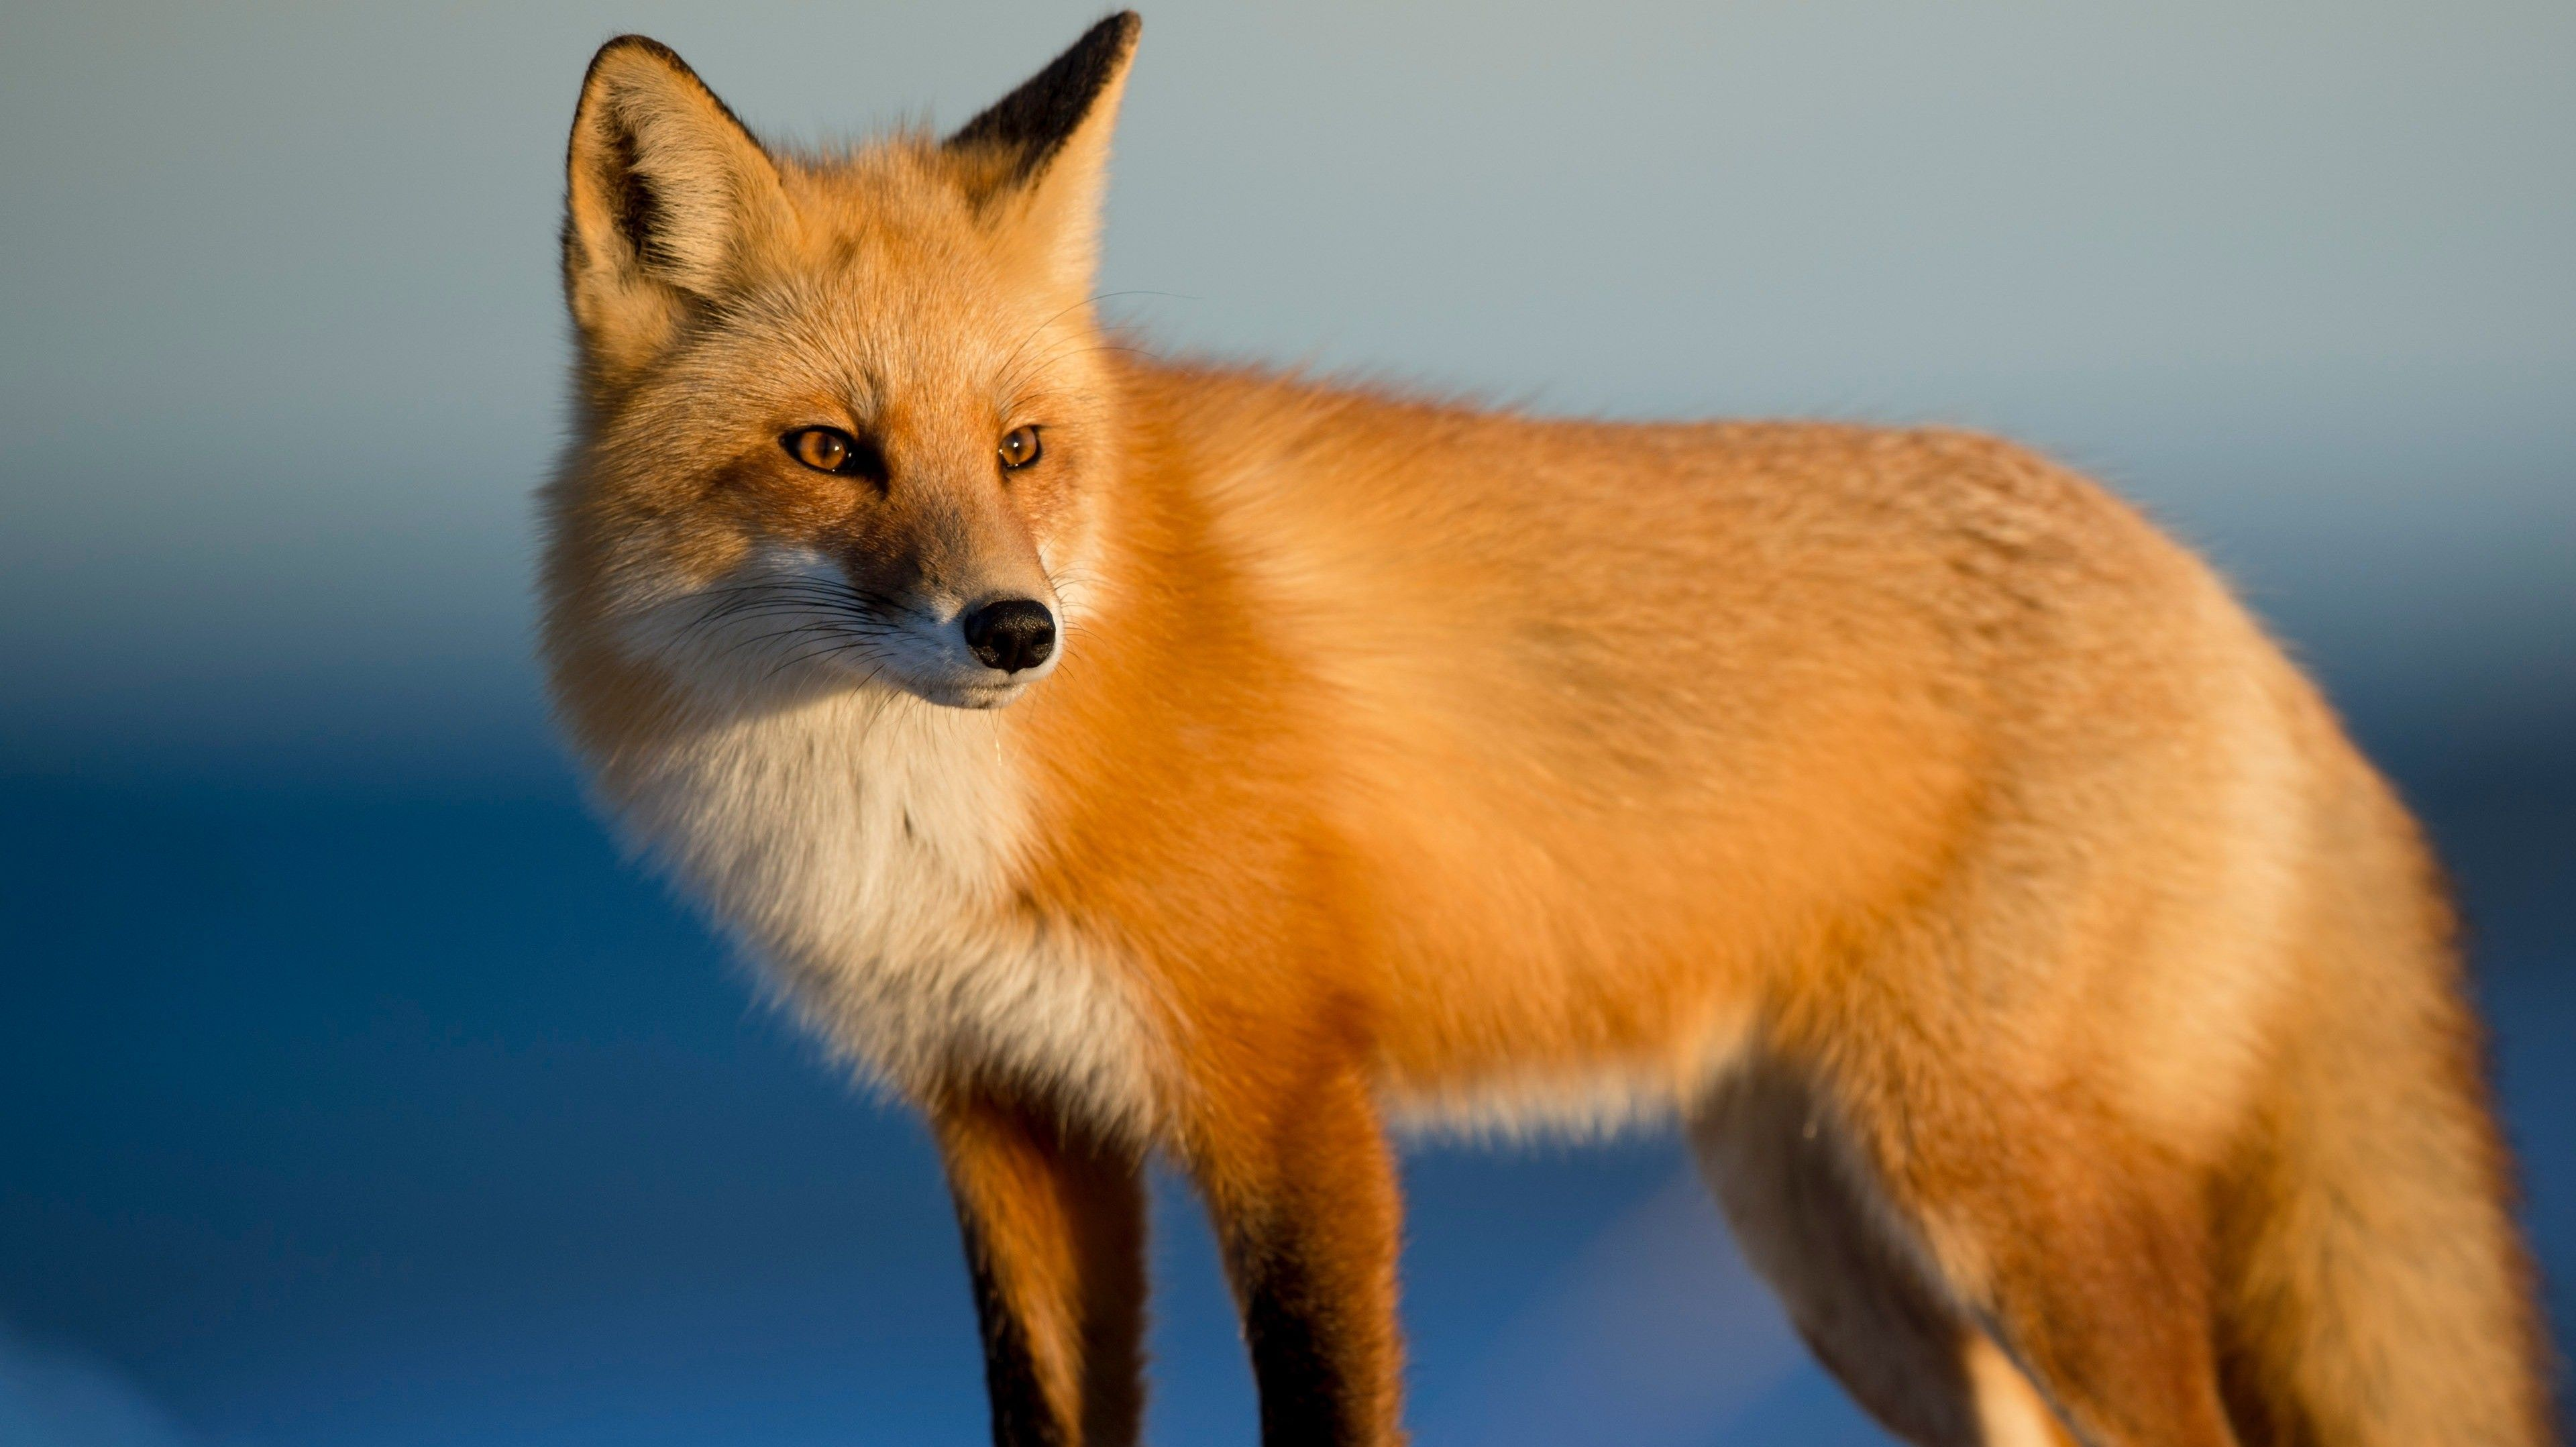 Animal Fox 4K Fondo de pantalla | HD Wallpapers